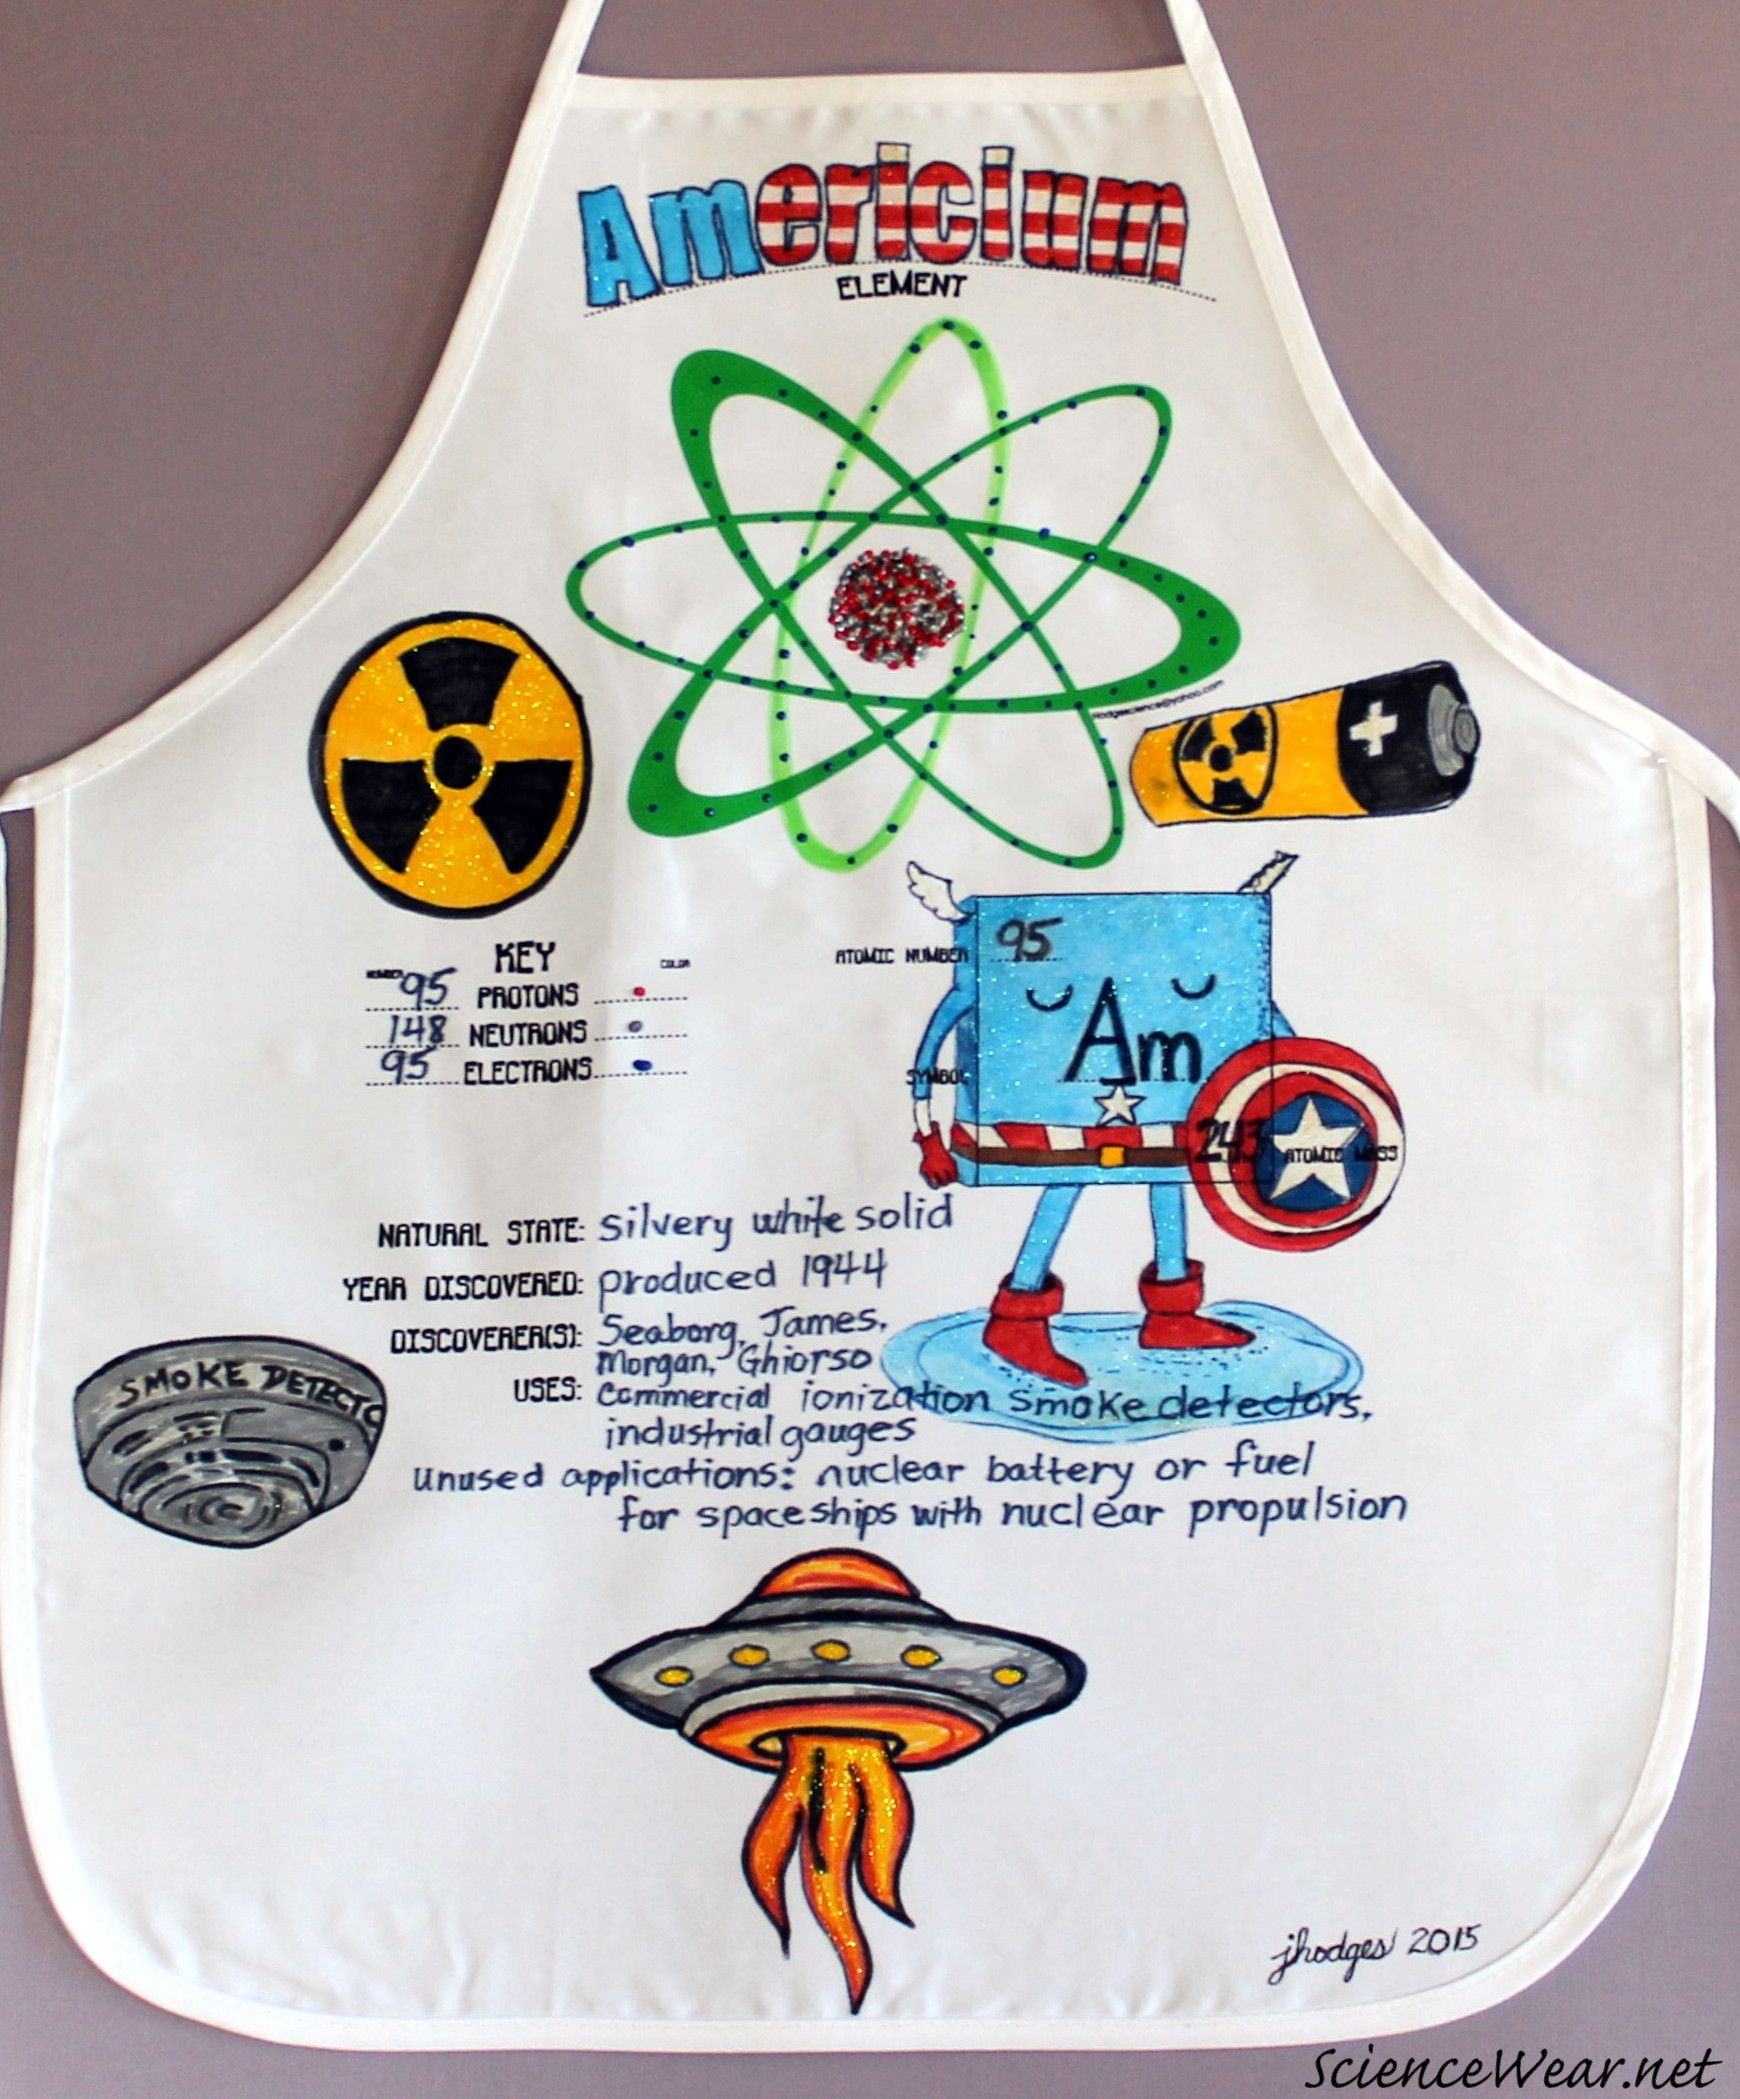 Element 95 is radioactive AMERICIUM. Wearable science